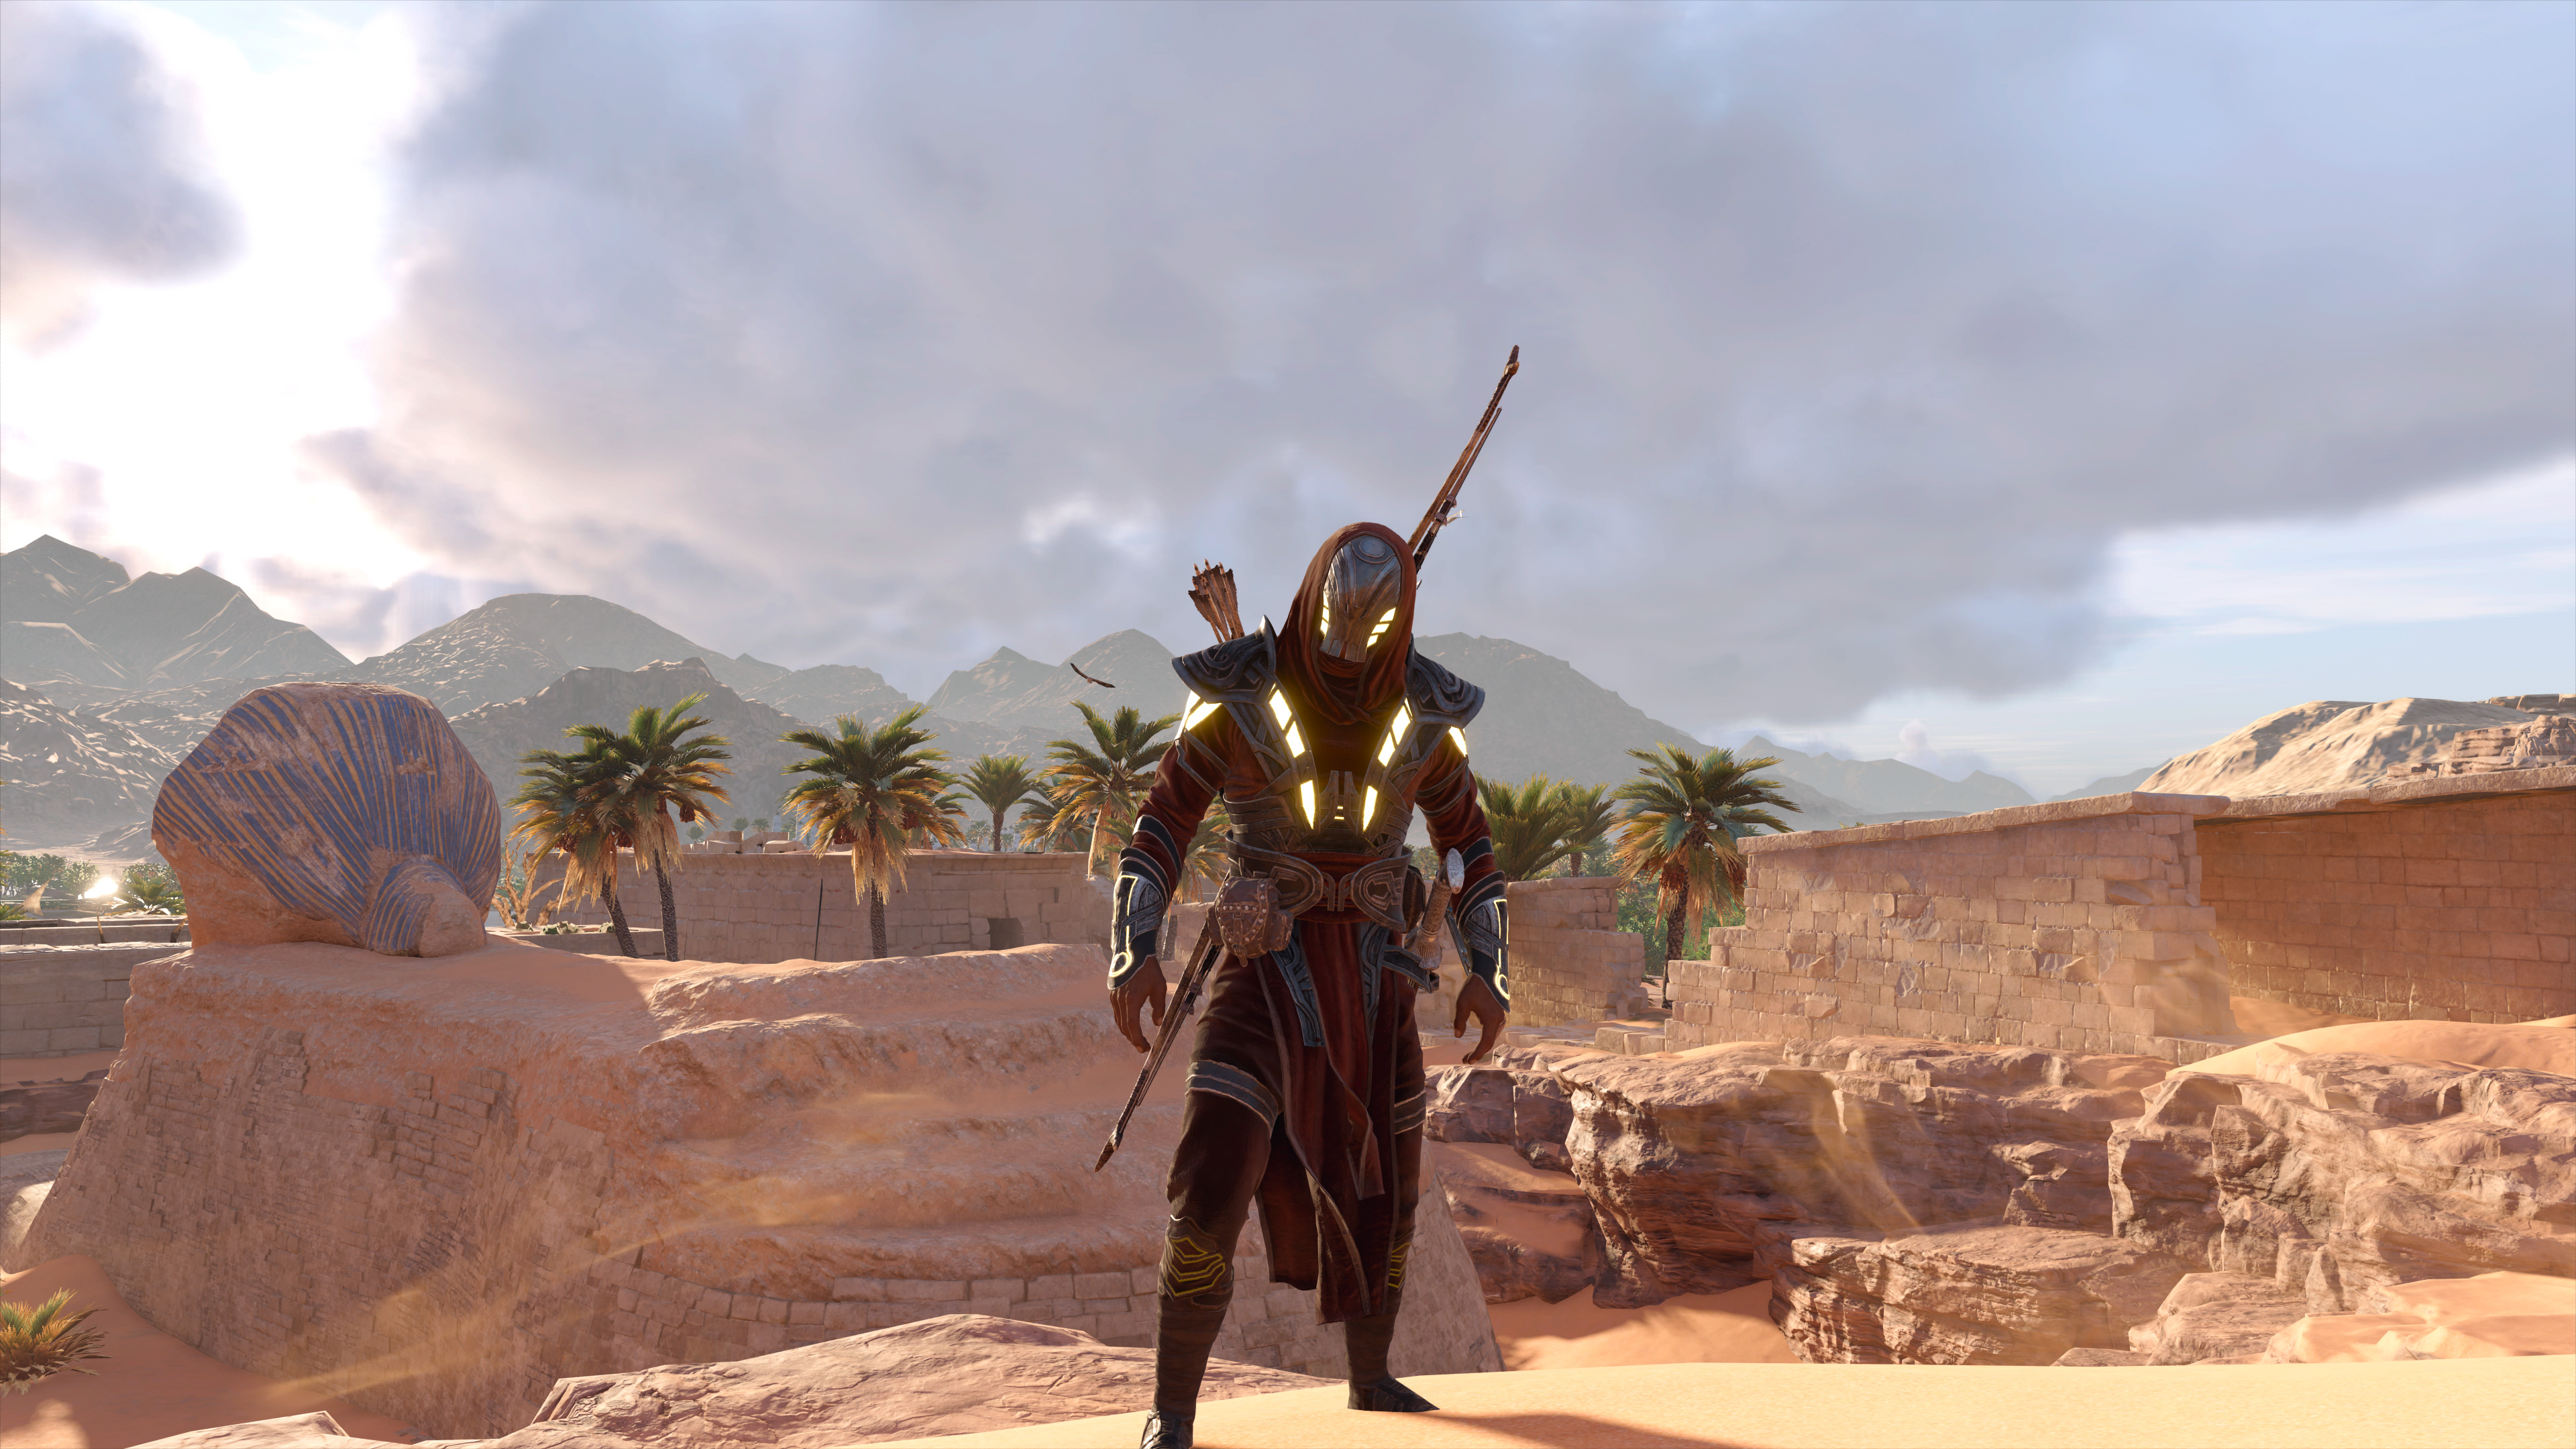 Hieroglyphs Assassins Creed Origins Hd Games 4k: Assassins Creed Origins Video Game 4k, HD Games, 4k